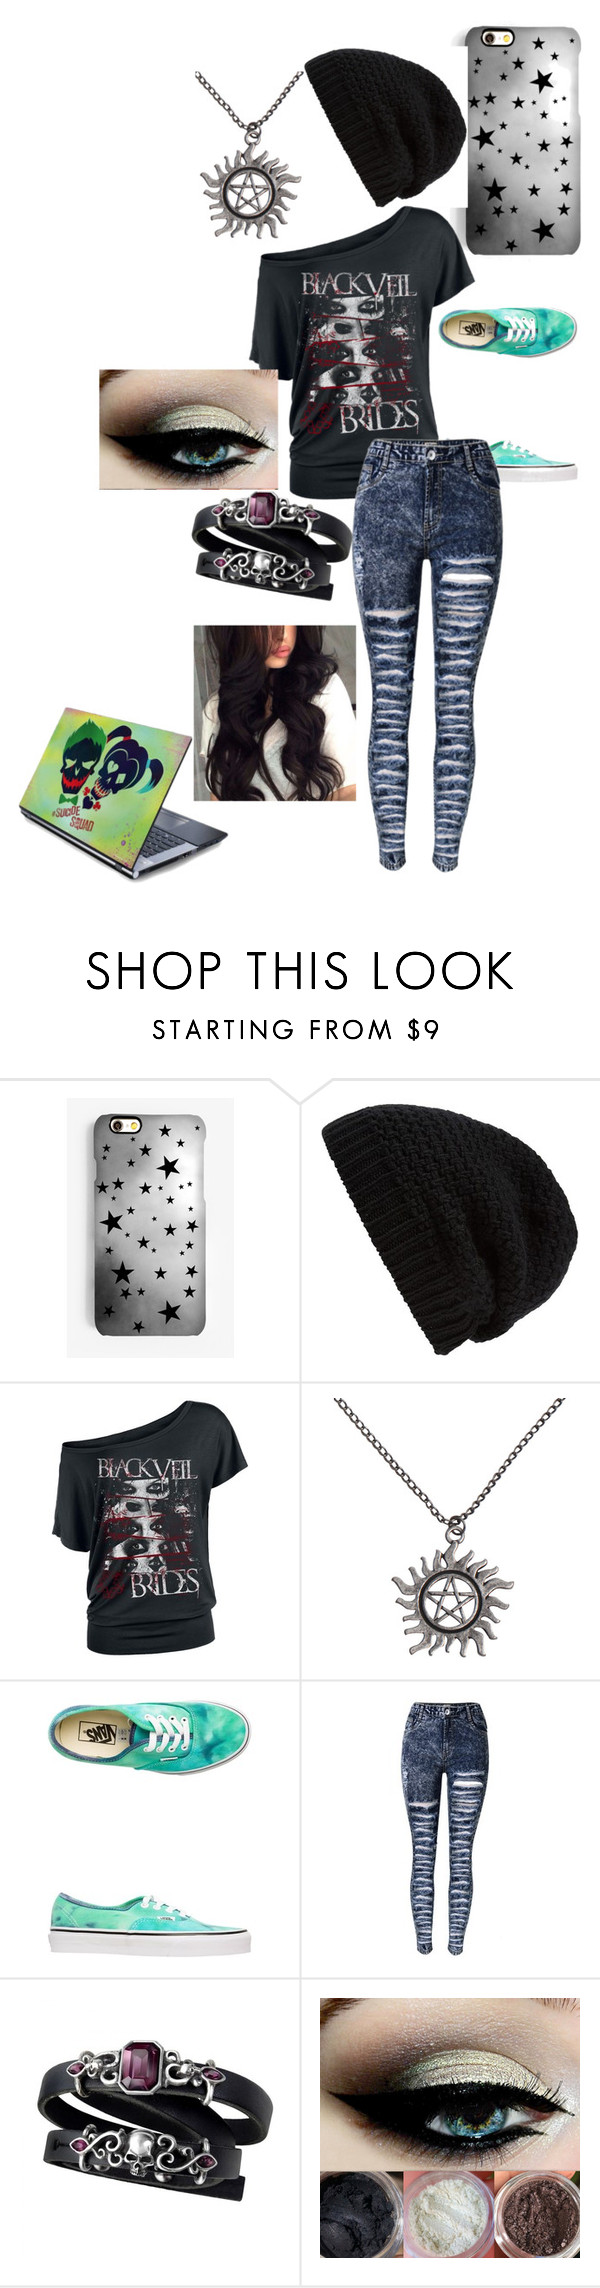 """Tryouts"" by summer-mendes on Polyvore featuring Rianna Phillips, Rick Owens and Vans"